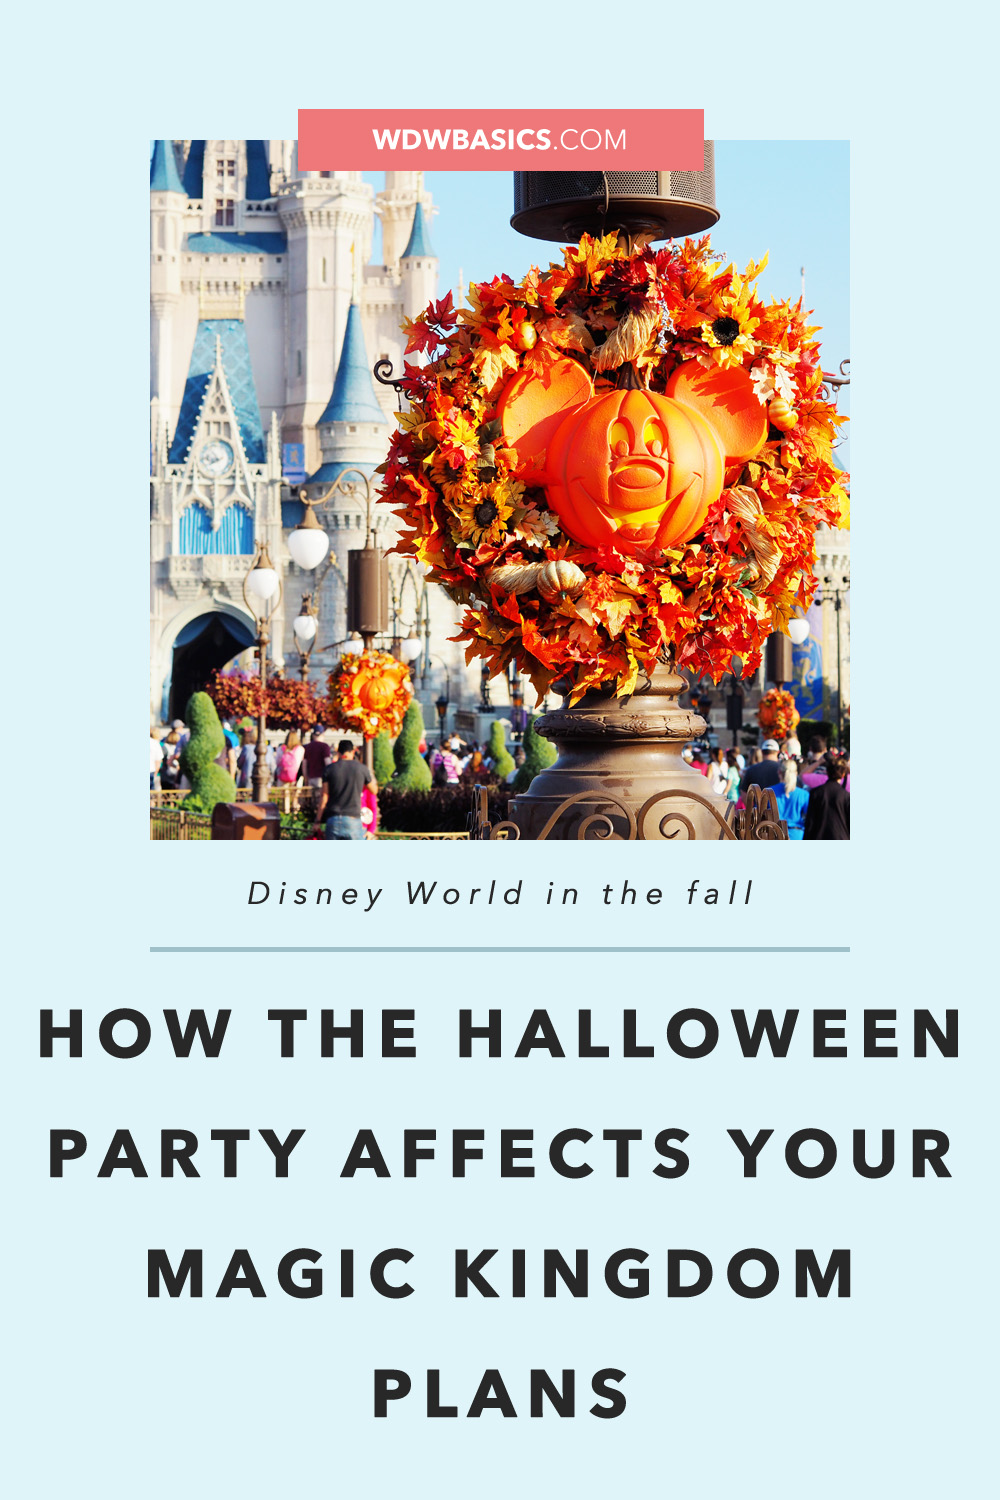 How the Halloween Party affects your Magic Kingdom Plans